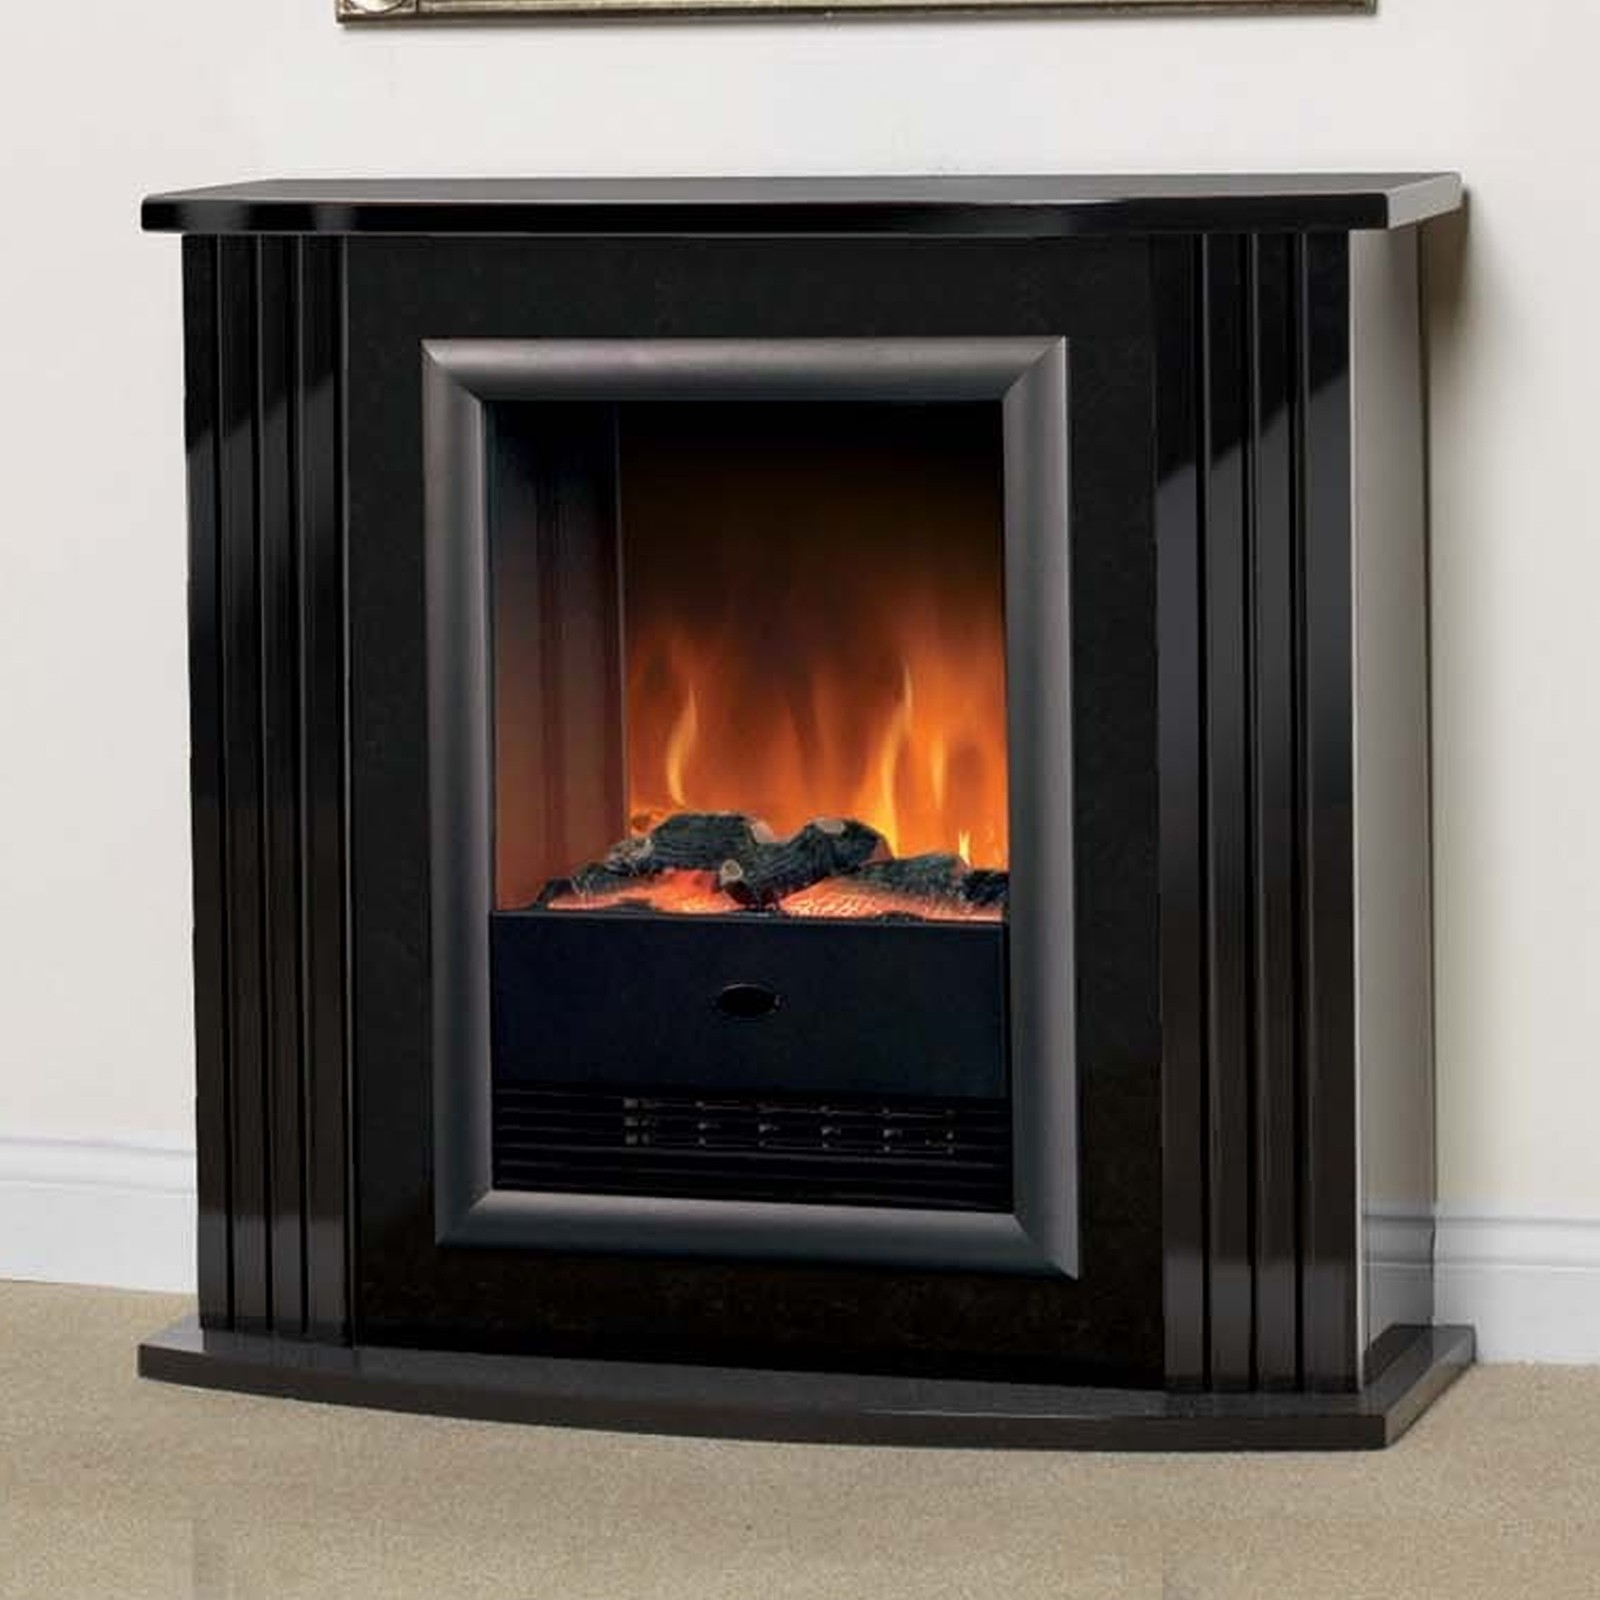 fireplaces electric on fireplace feminology s for uk sale